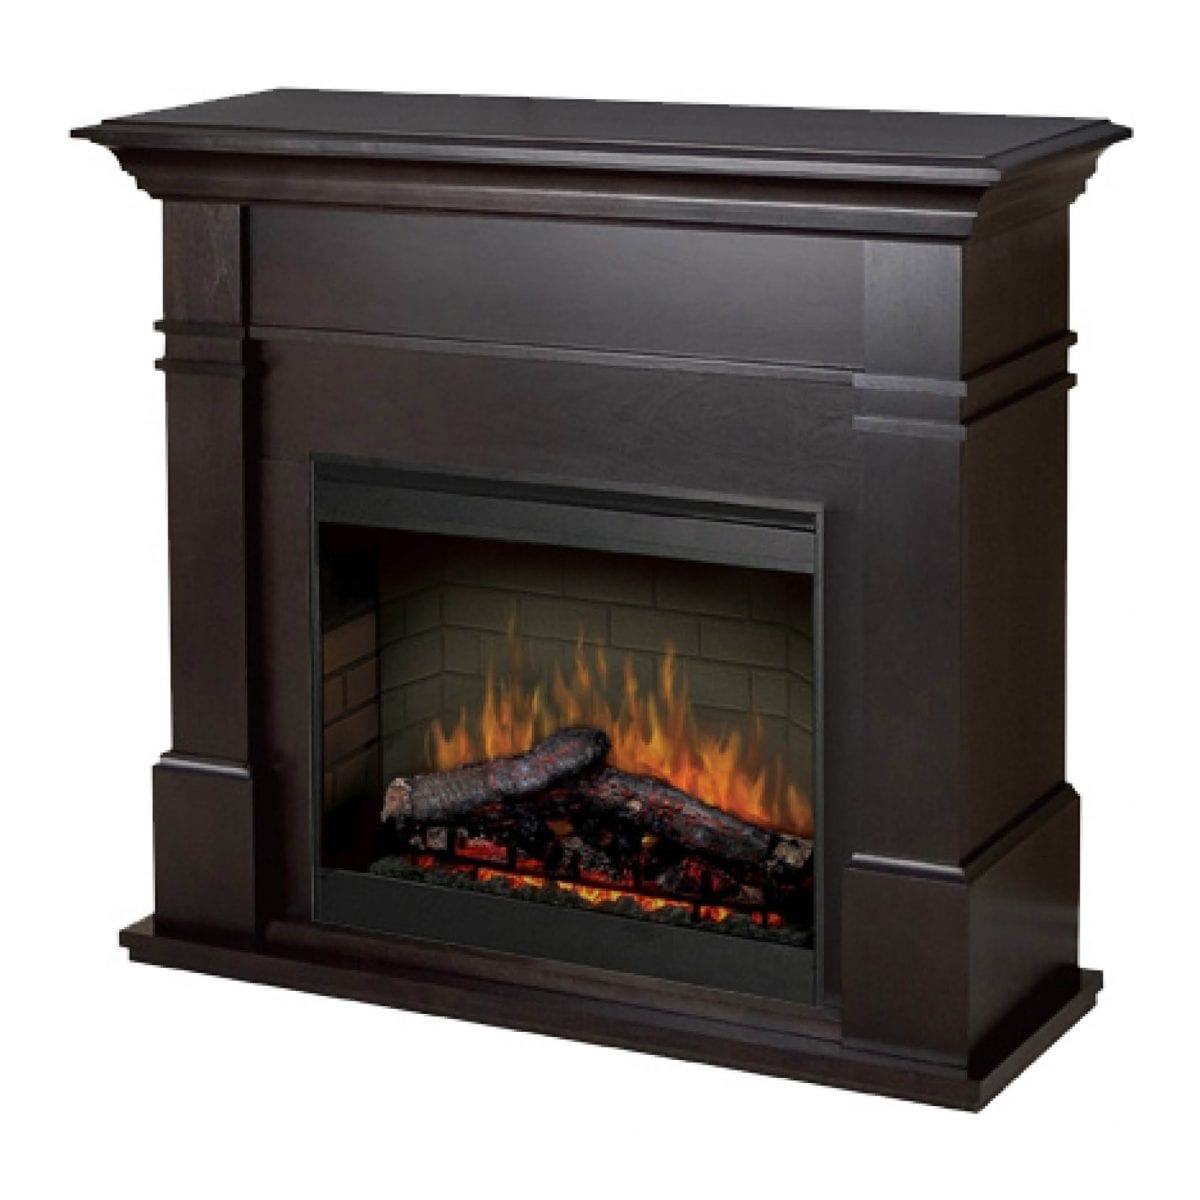 equipment polystone northern pin tool model fireplace electric unifire btu fireplaces mantel with